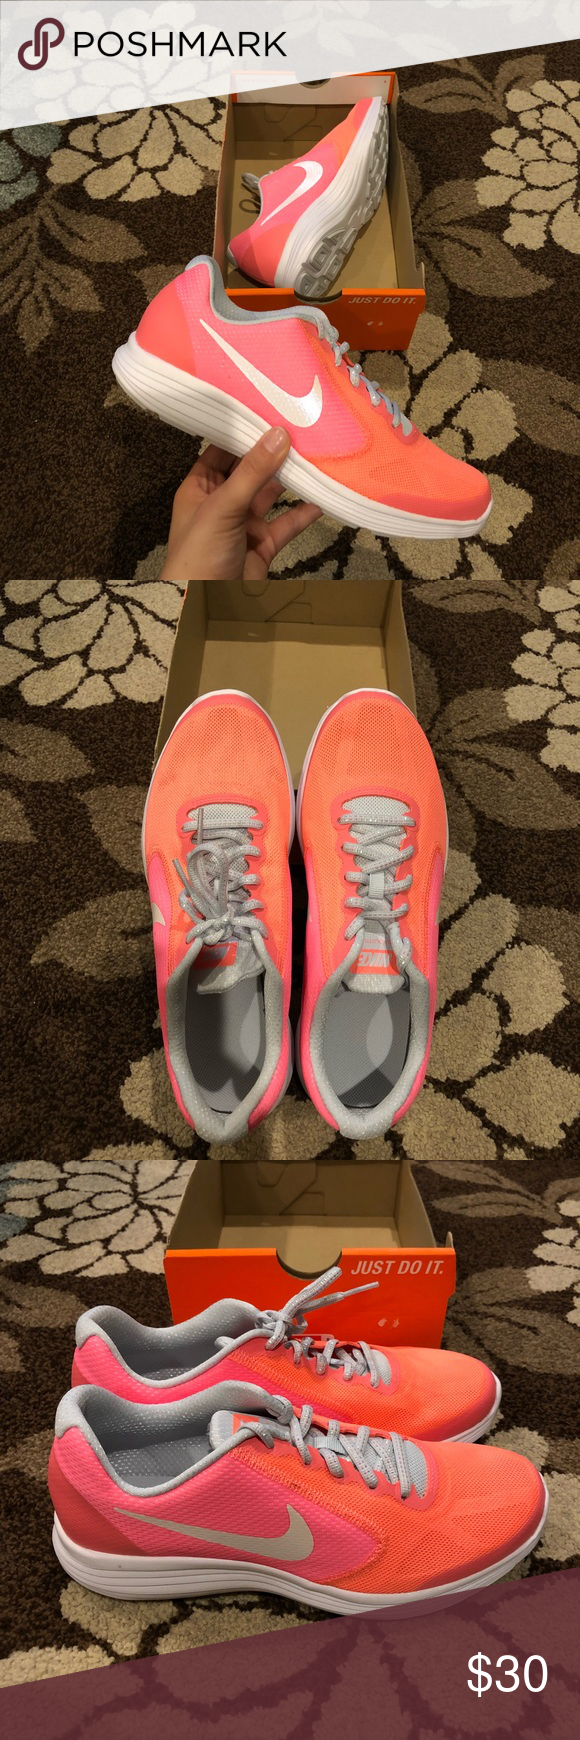 buy online 50b4e 2ed4e Nike Revolution 3 SE (GS)! Comes from a smoke free home! Brand new with  tags! The sizes in the listing are women s sizes as I will be shipping the  ...